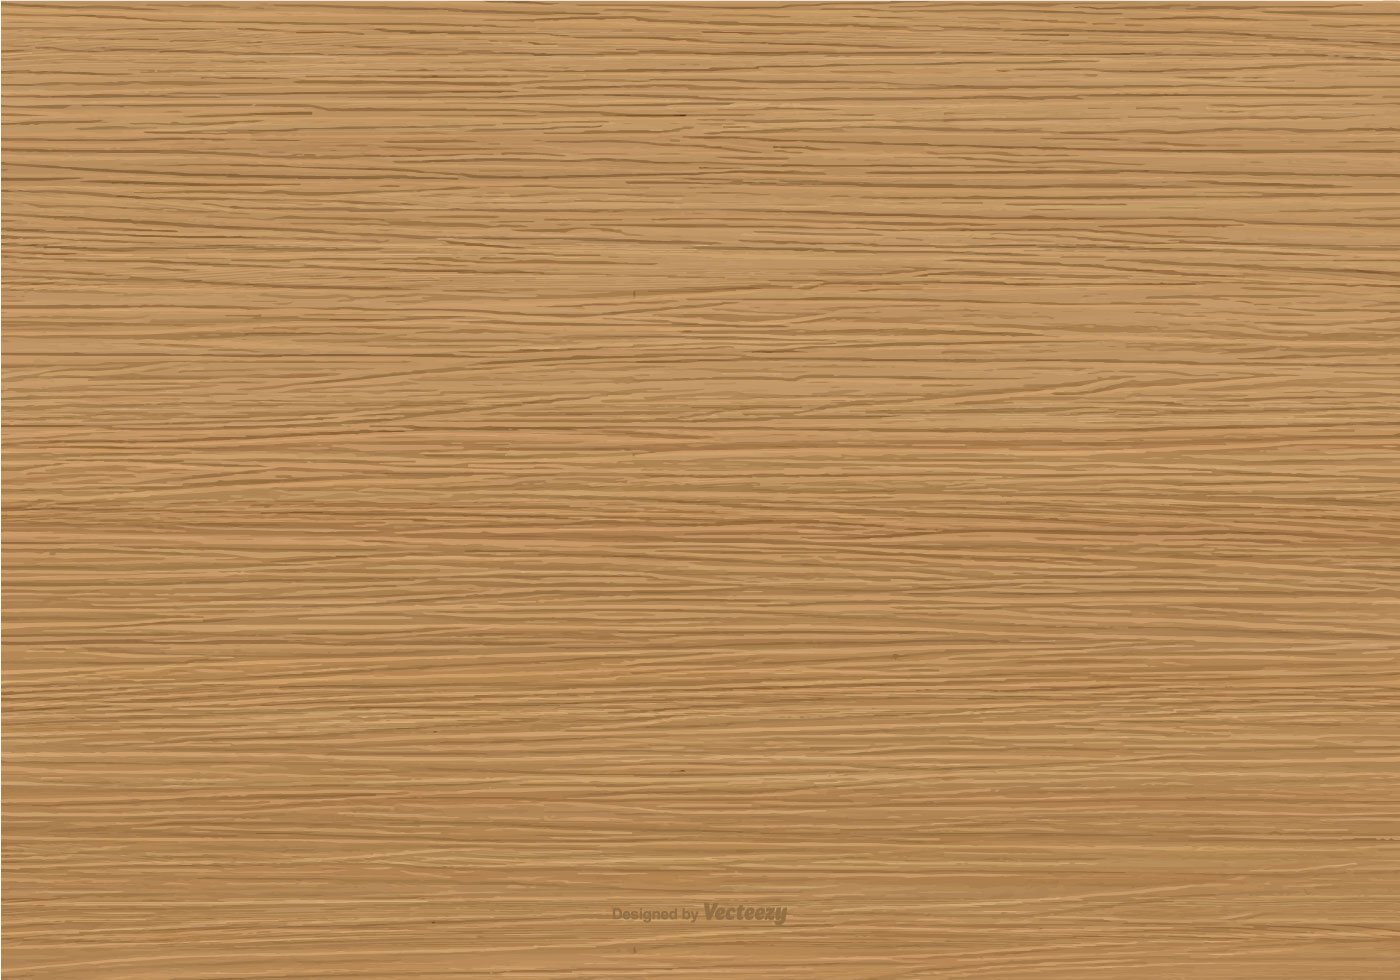 Wood Free Vector Art Backgrounds Textures